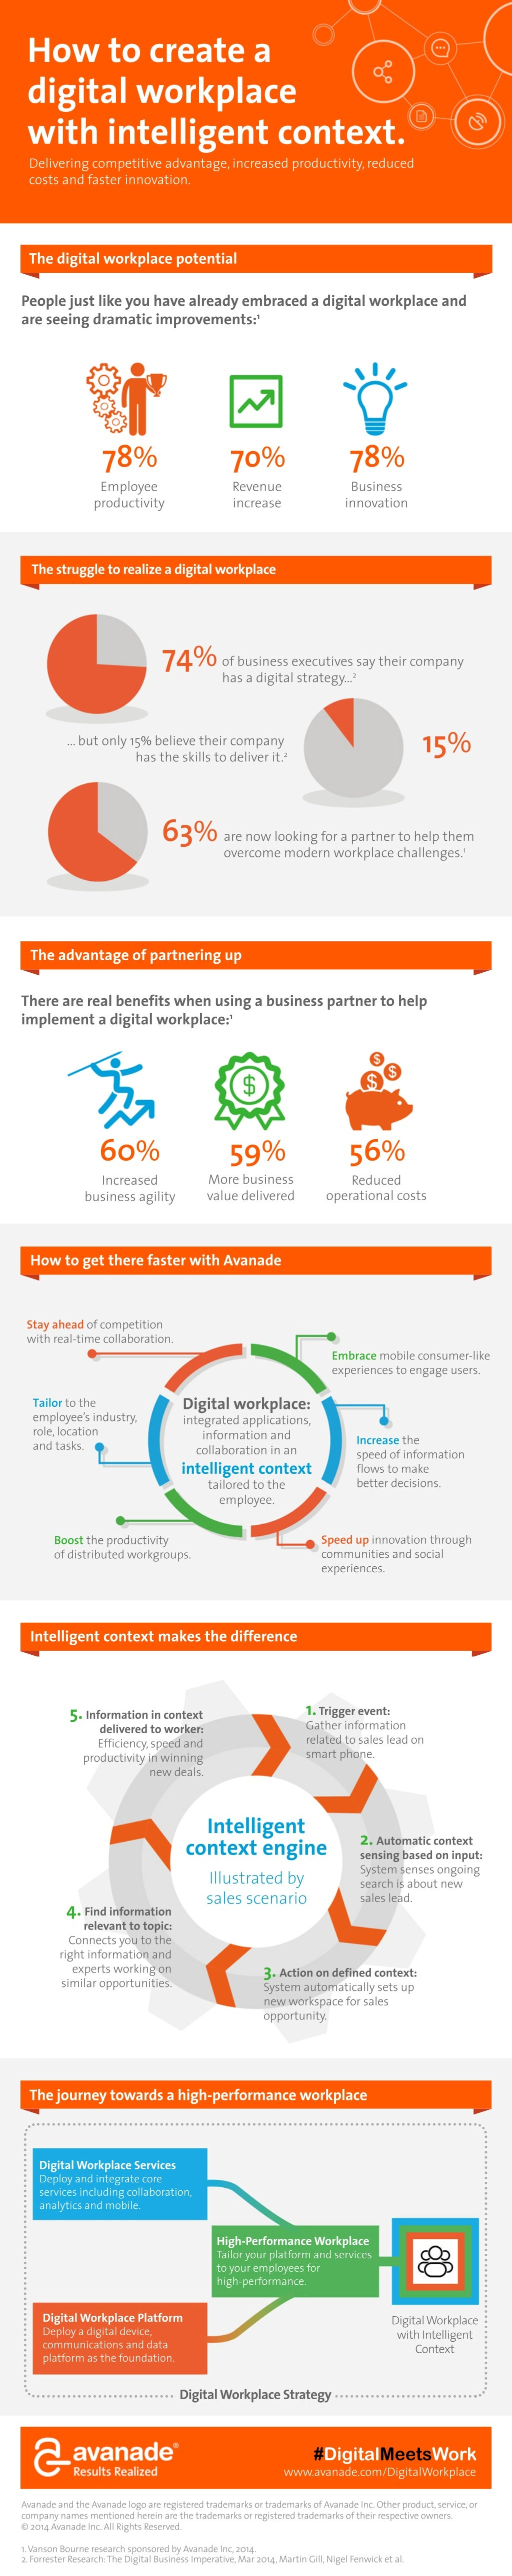 How To Create a Digital Workplace